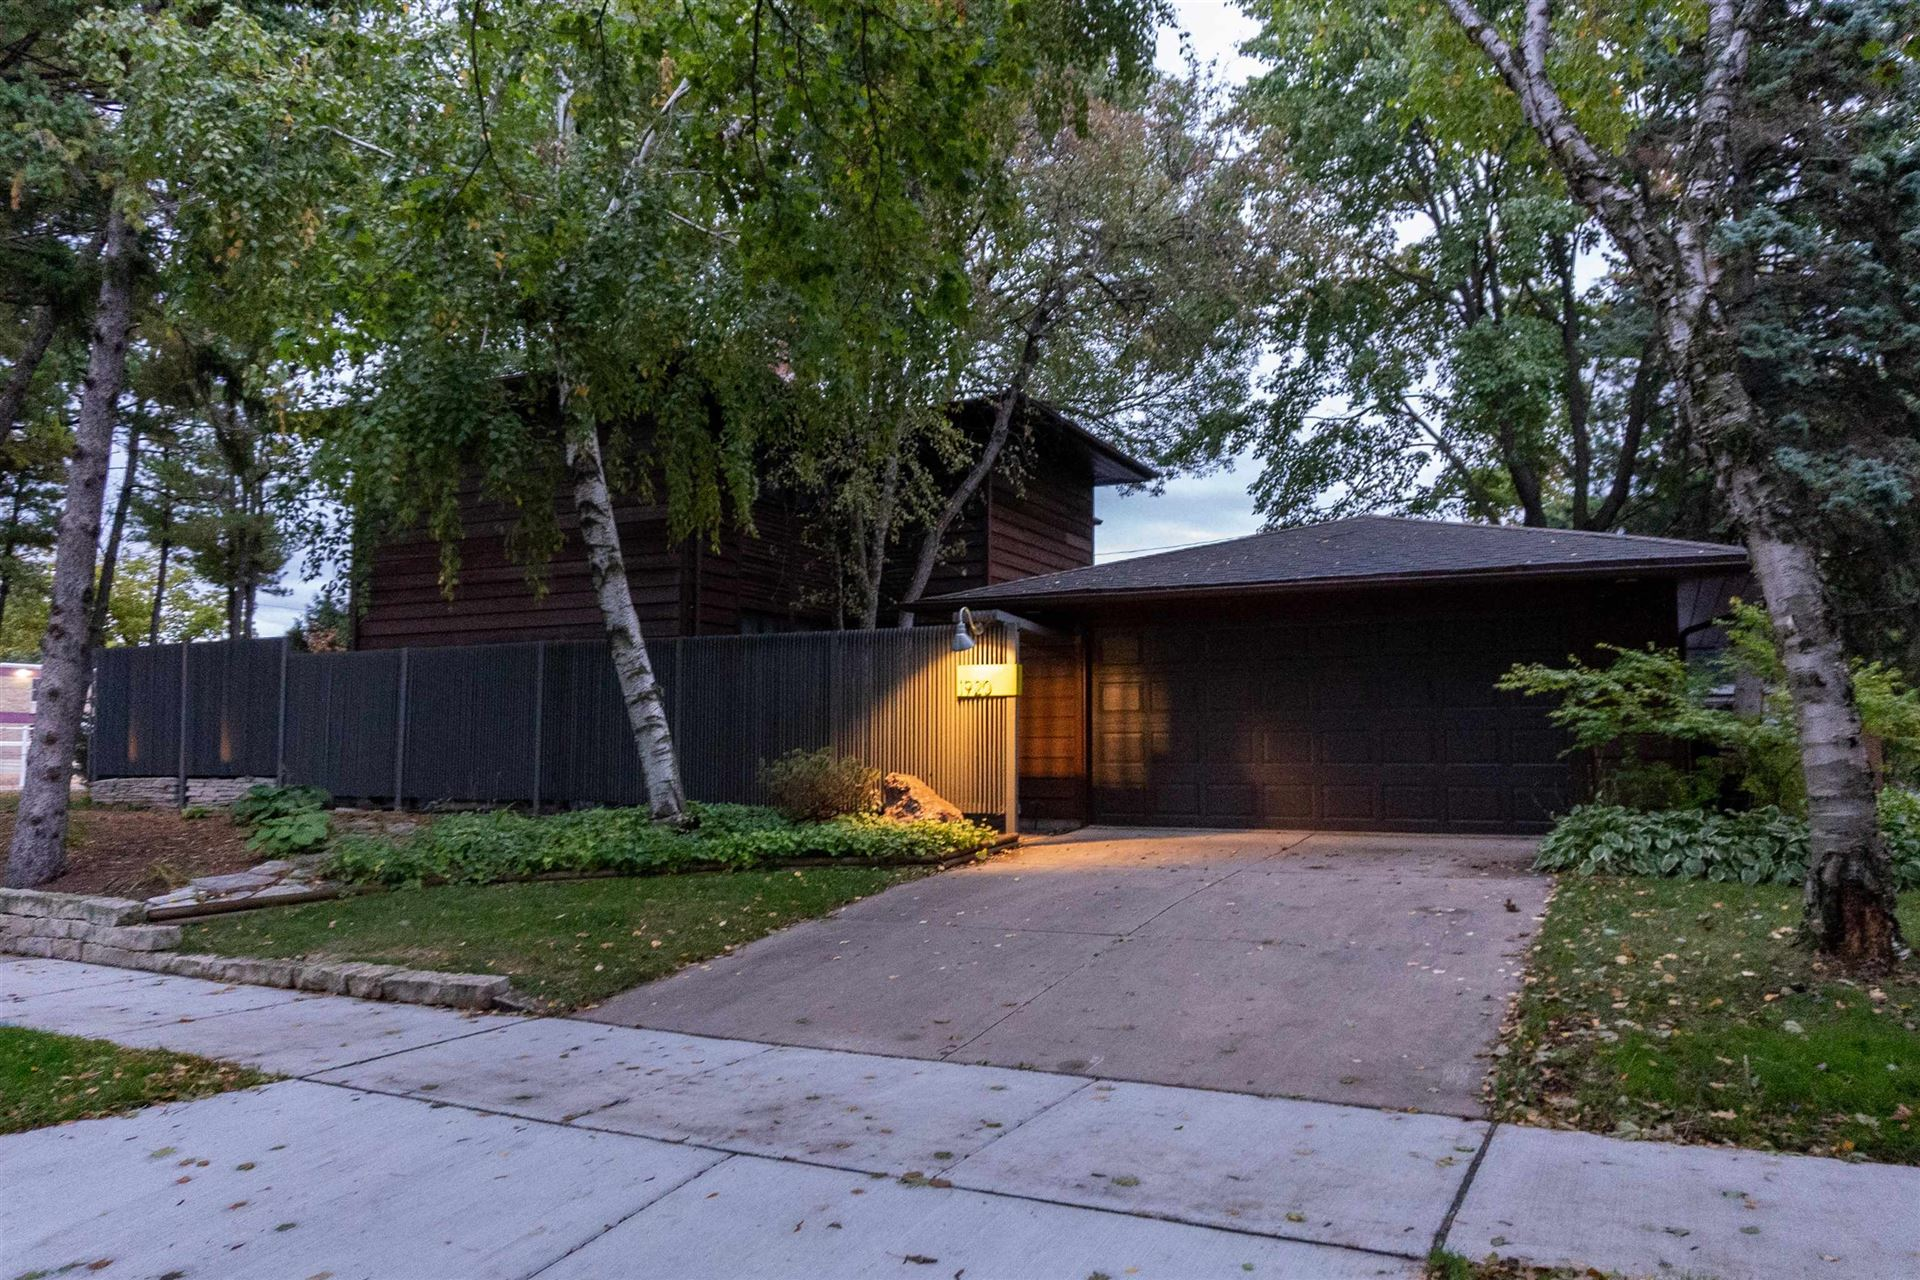 Photo for 1920 N OUTAGAMIE Street, APPLETON, WI 54914 (MLS # 50249483)